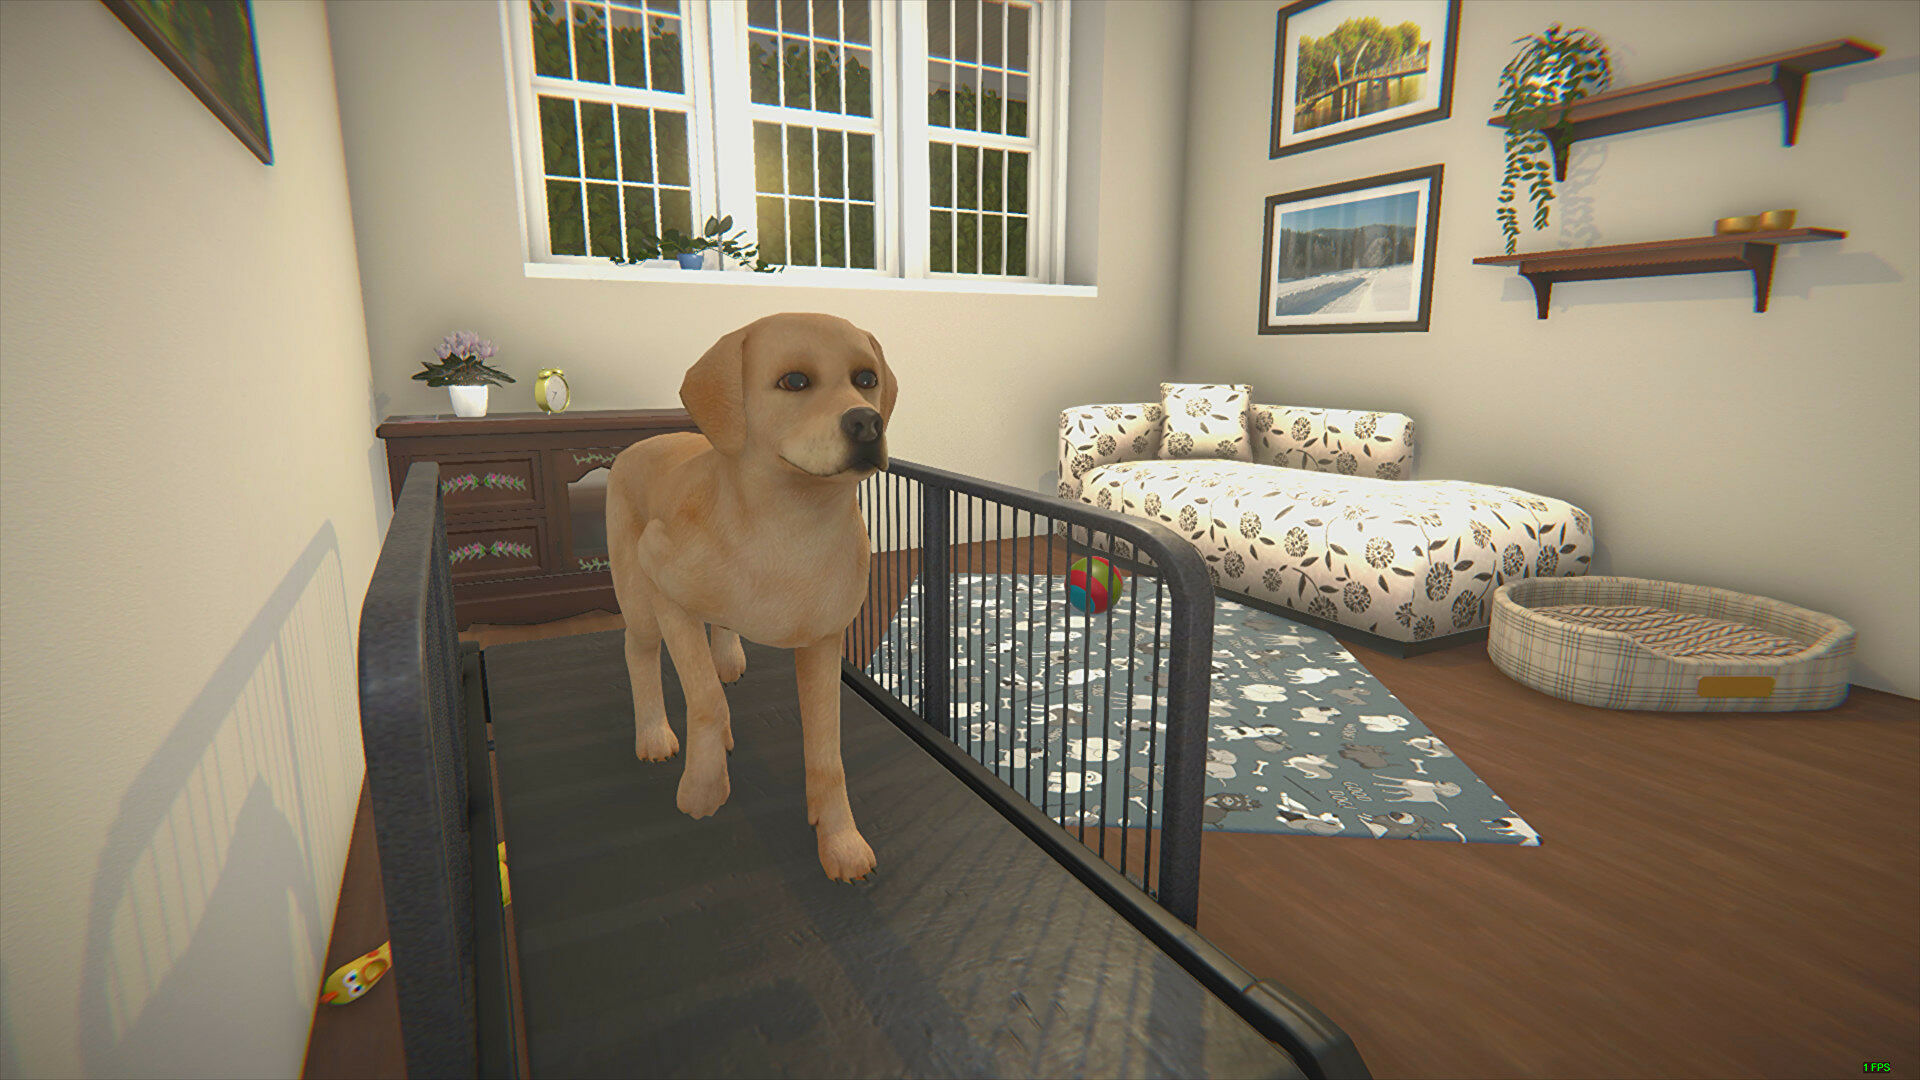 House Flipper is getting a pets DLC for some reason and it looks adorable